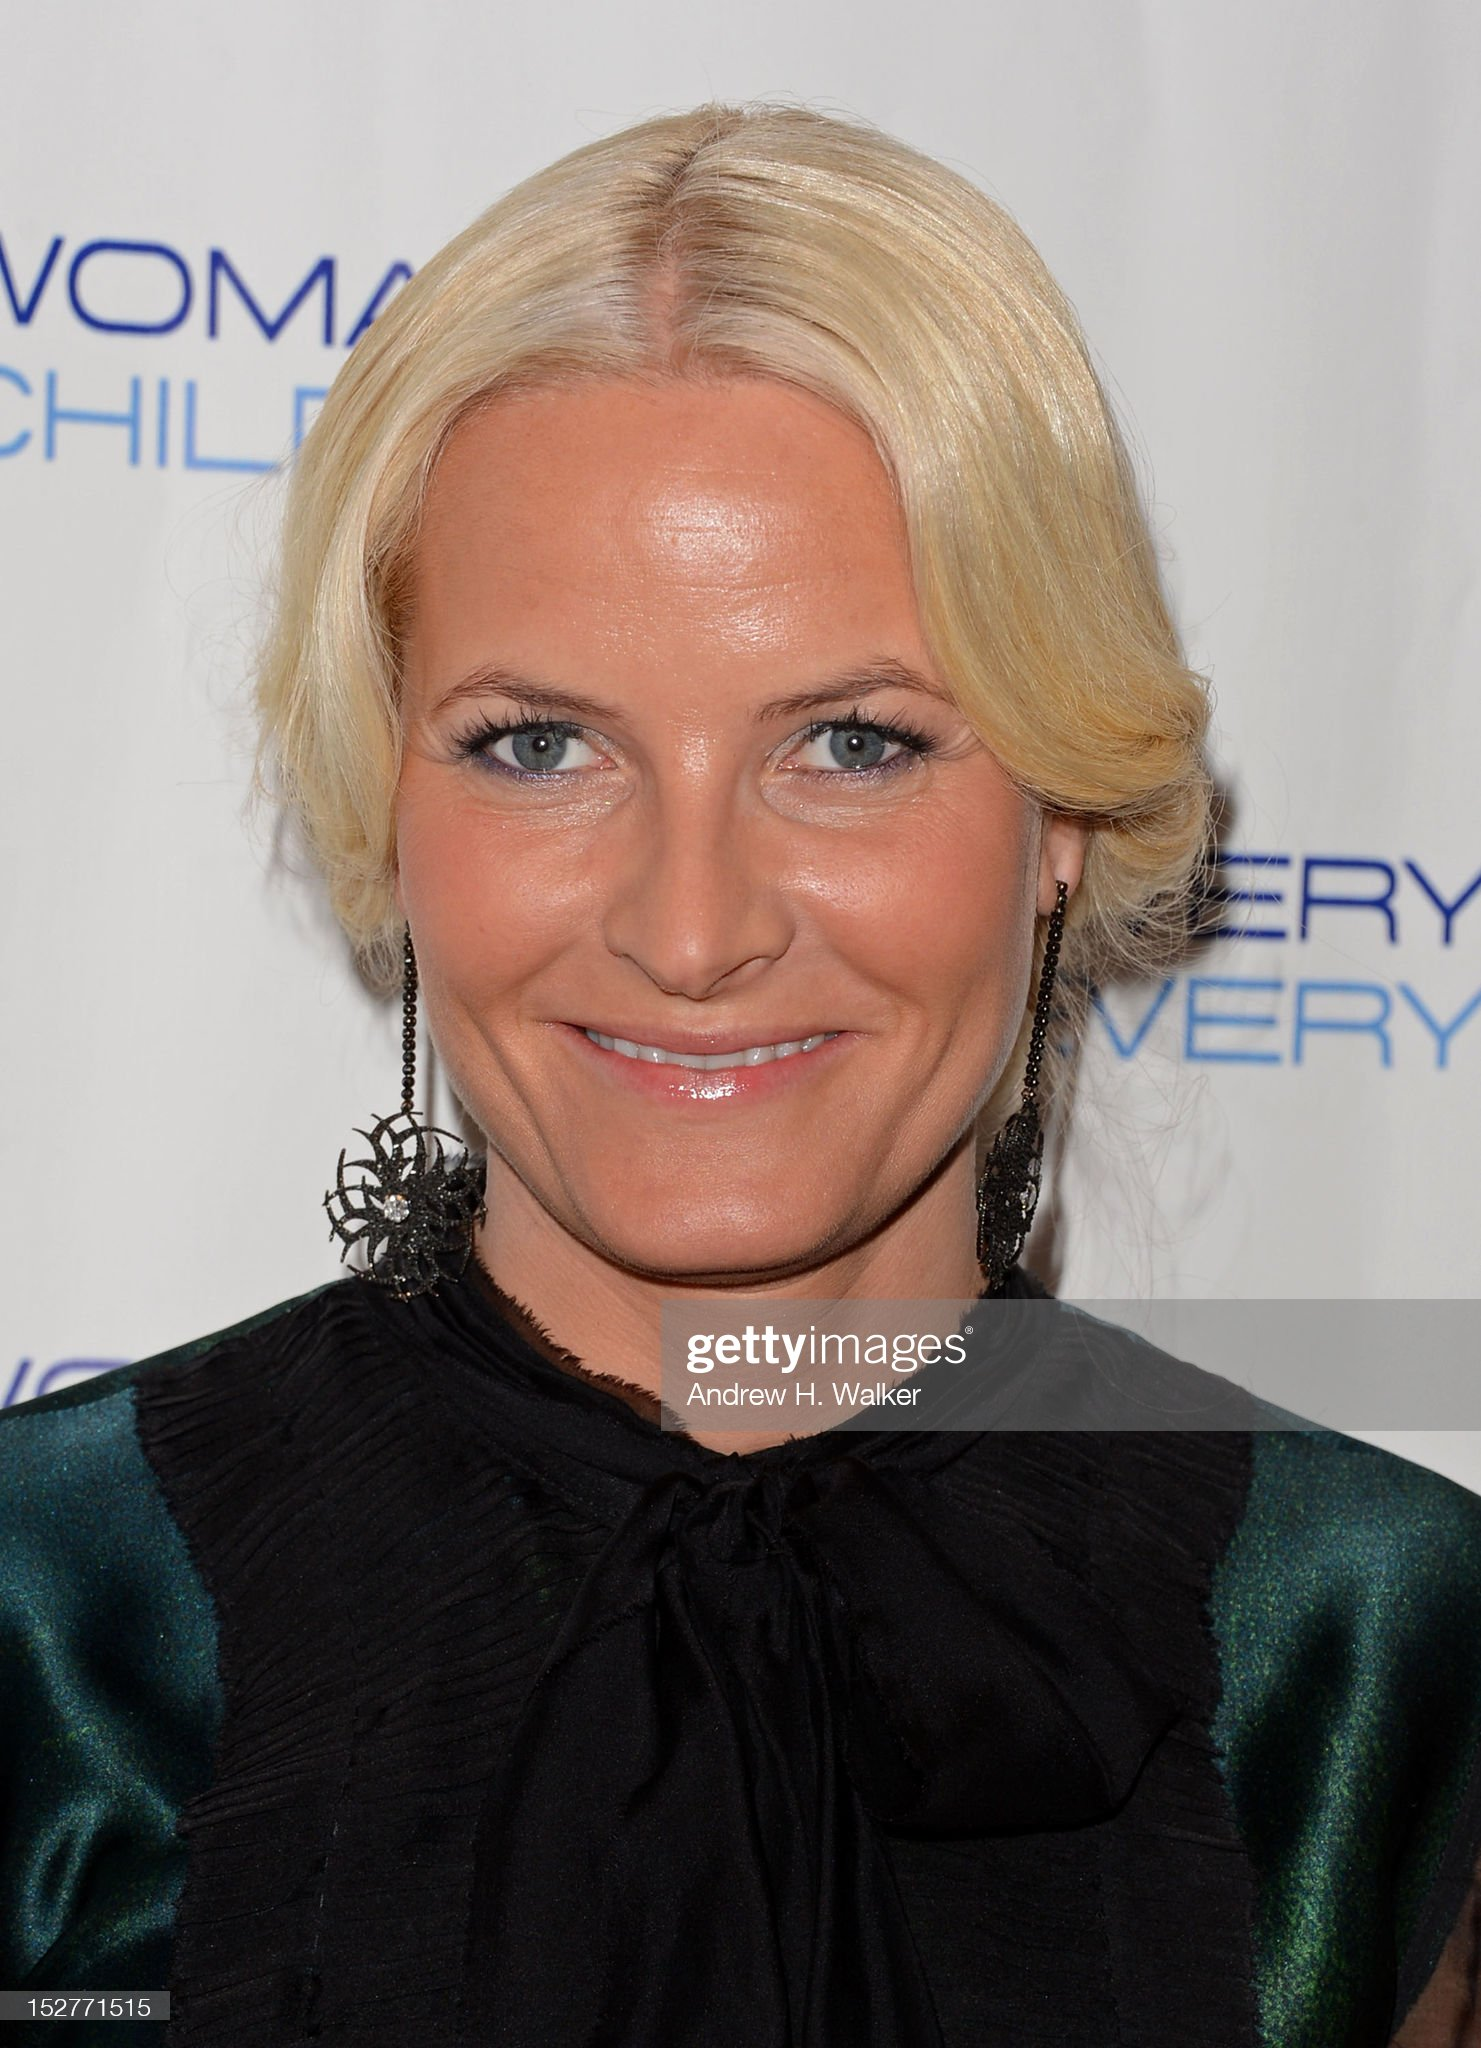 United Nations Every Woman Every Child Dinner 2012 - Arrivals : News Photo